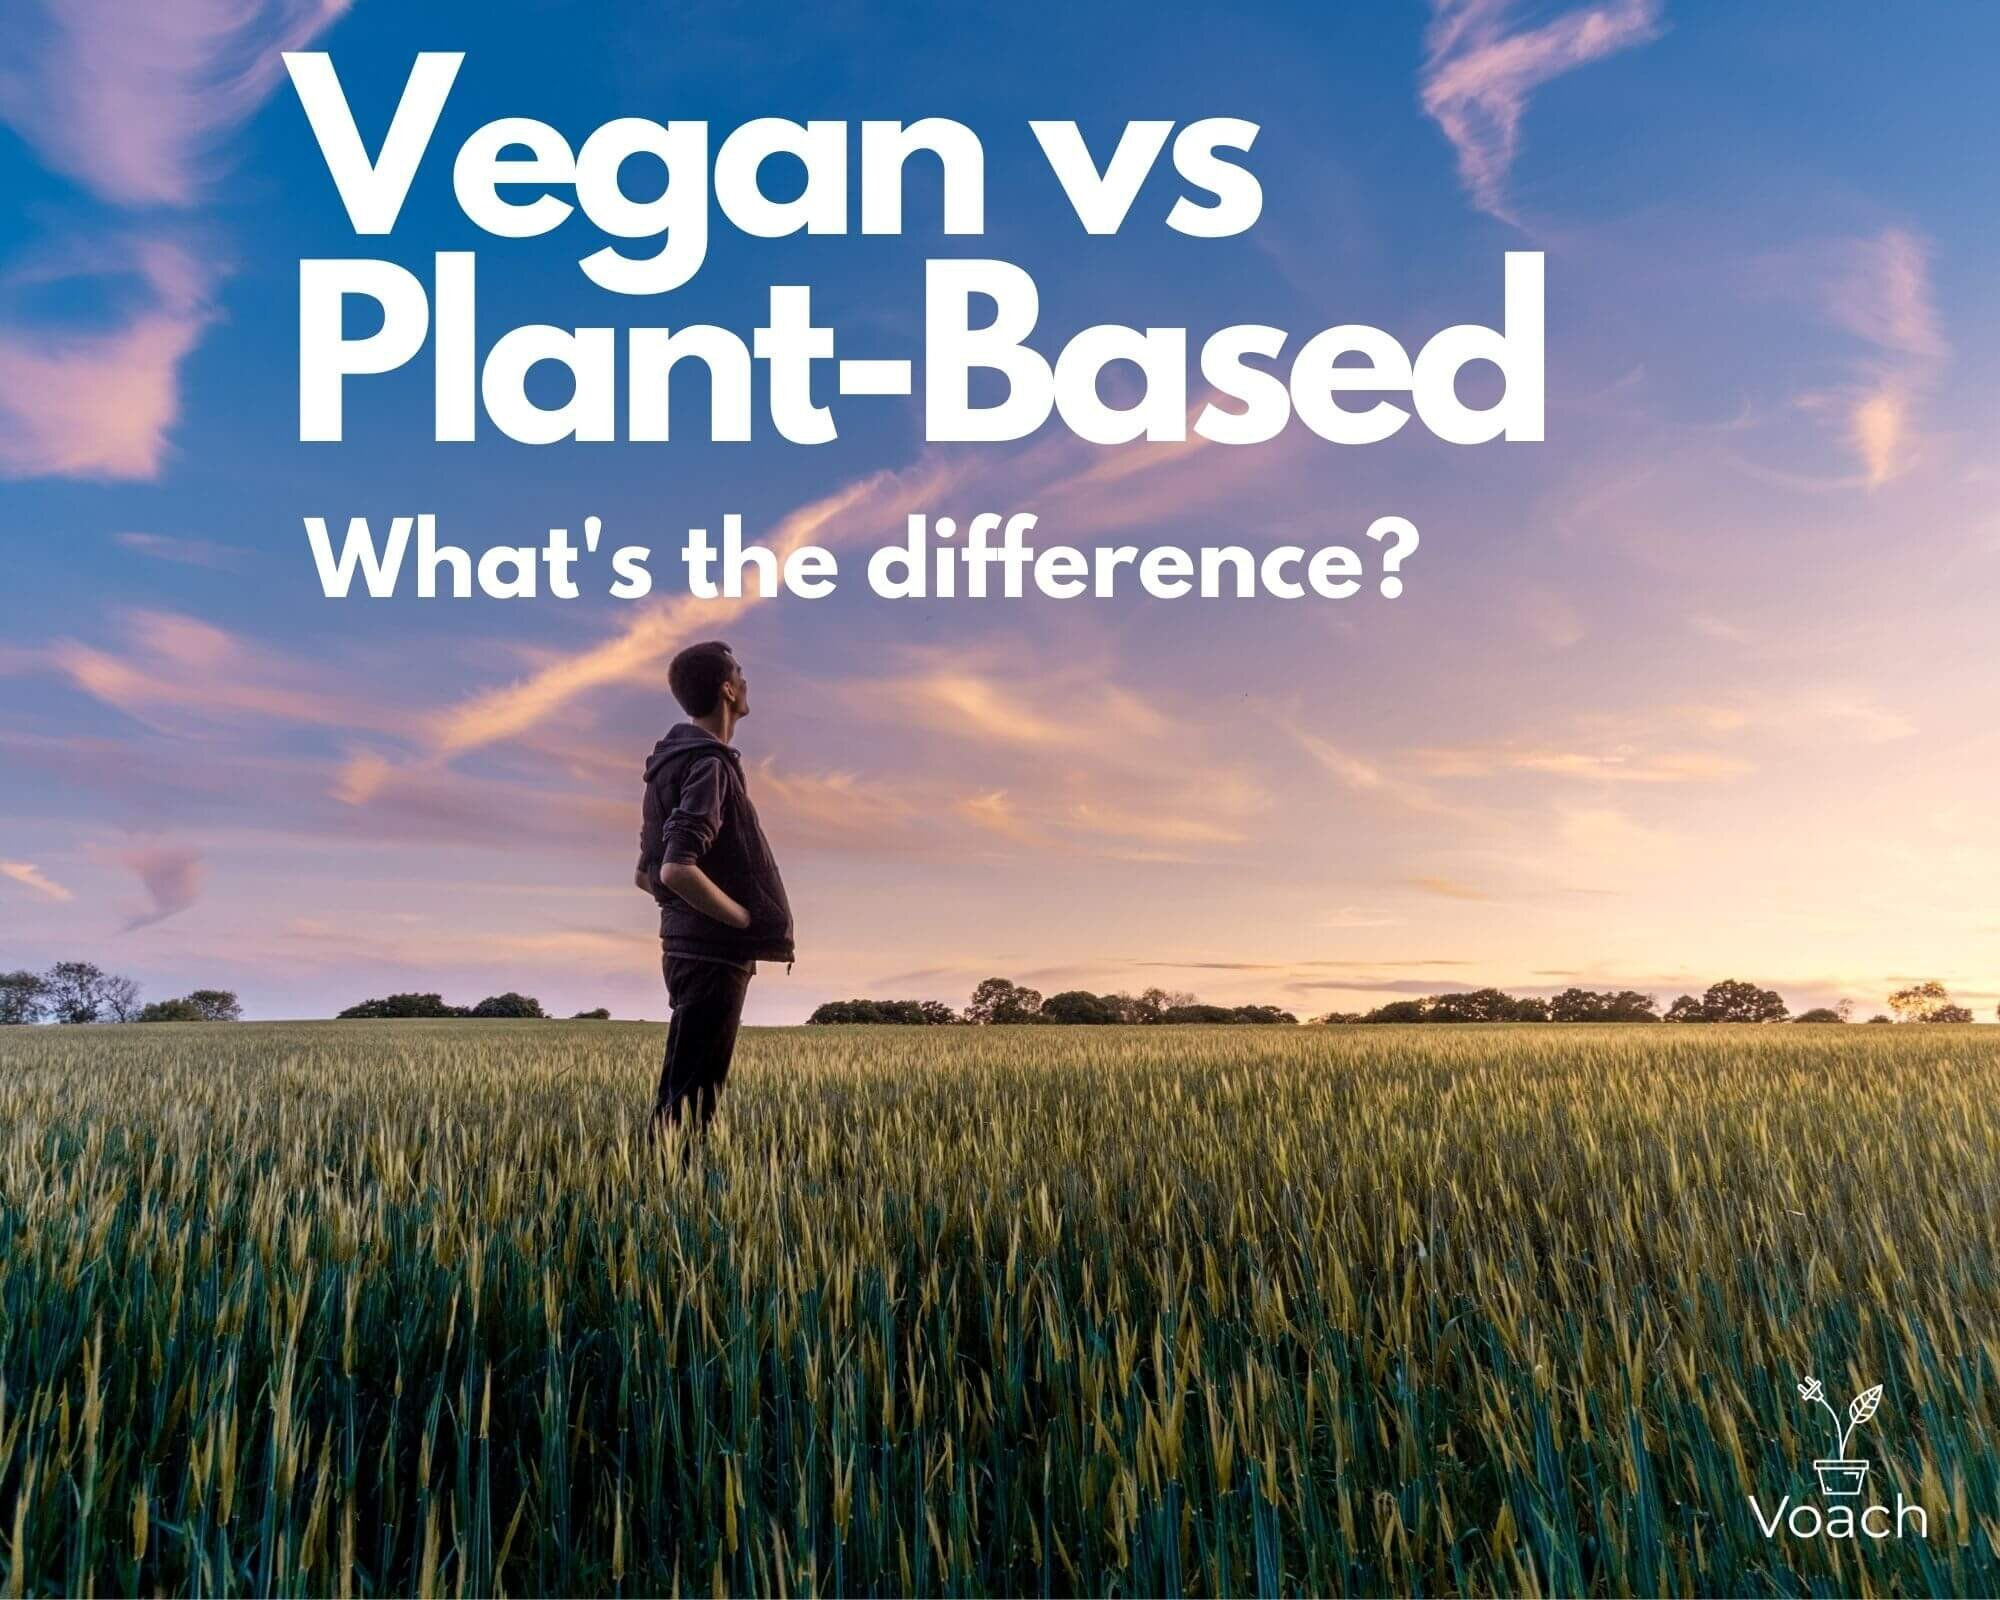 Vegan vs Plant-Based Diet: What's the difference? {2021}